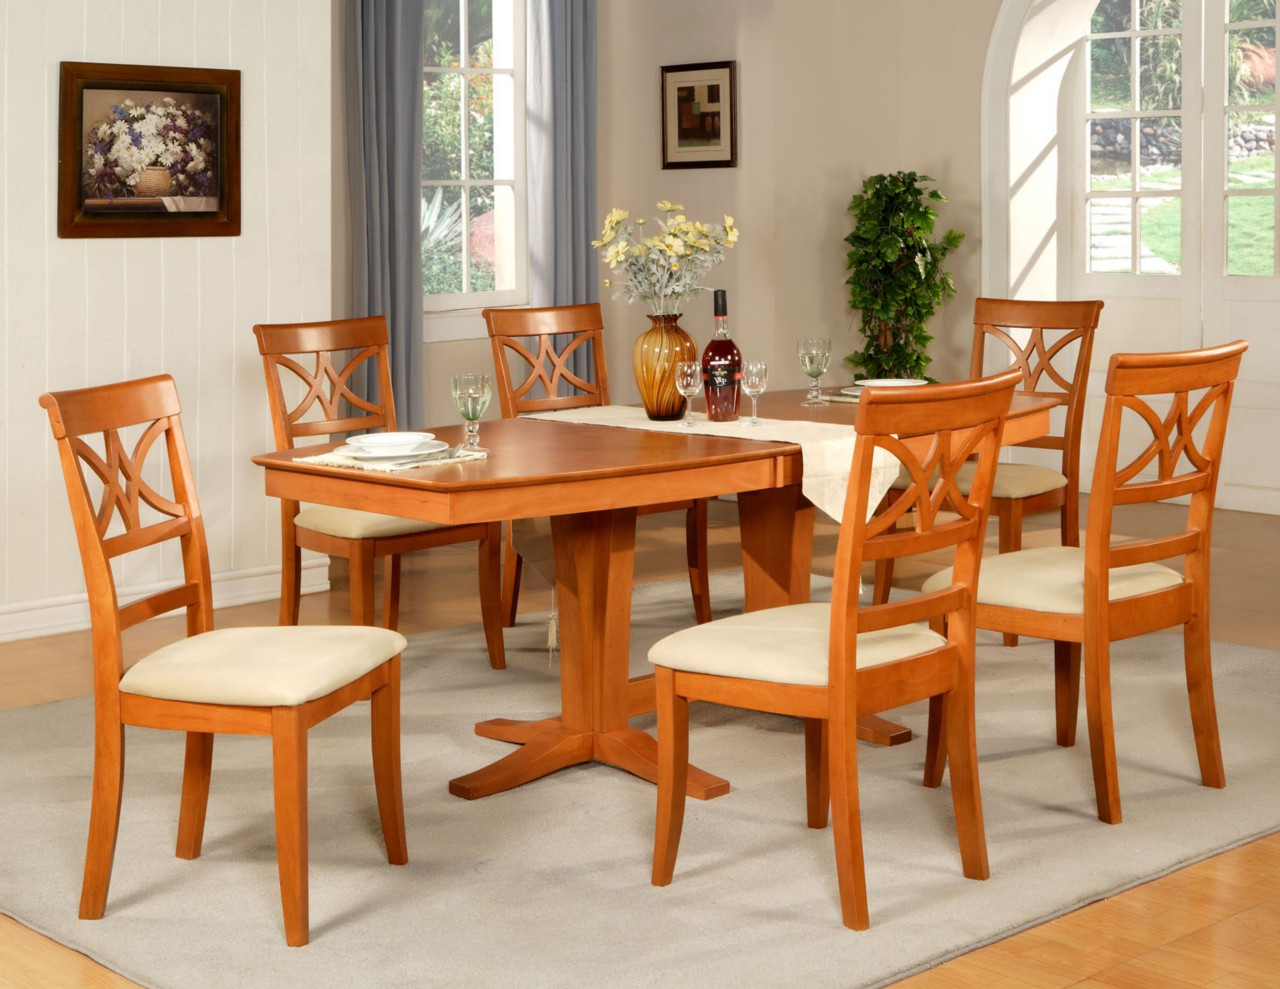 Pc dining room set table and wood seat chairs in light